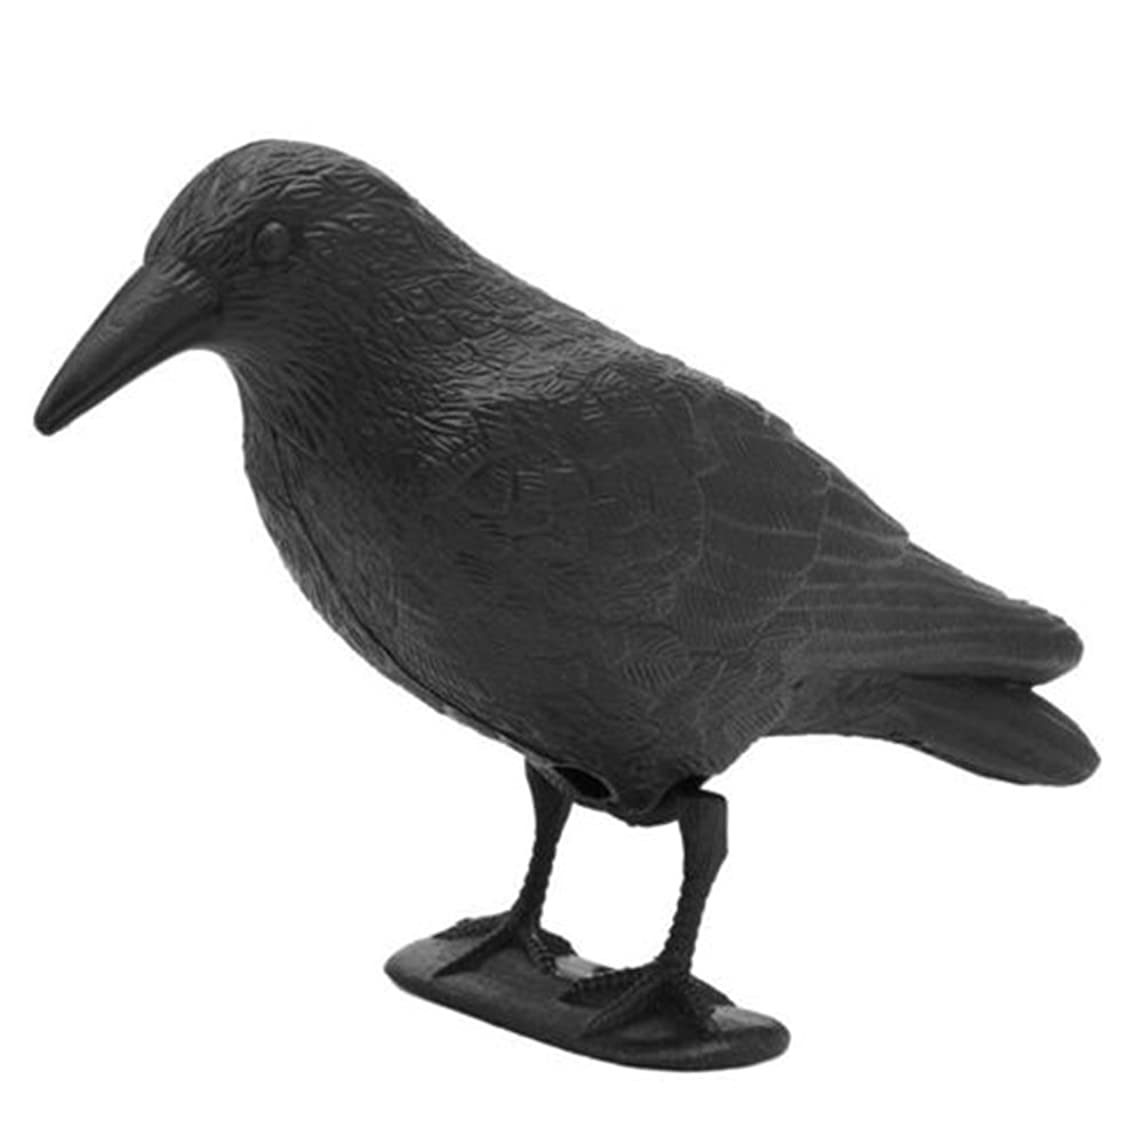 MEIBY Crow Decoy, 1pc Flocked Hard Plastic Crows Full Body While Rook Raven Decoys Crow Shooting Hunting inc Feet & Stakes for Hunting Shooting Stand